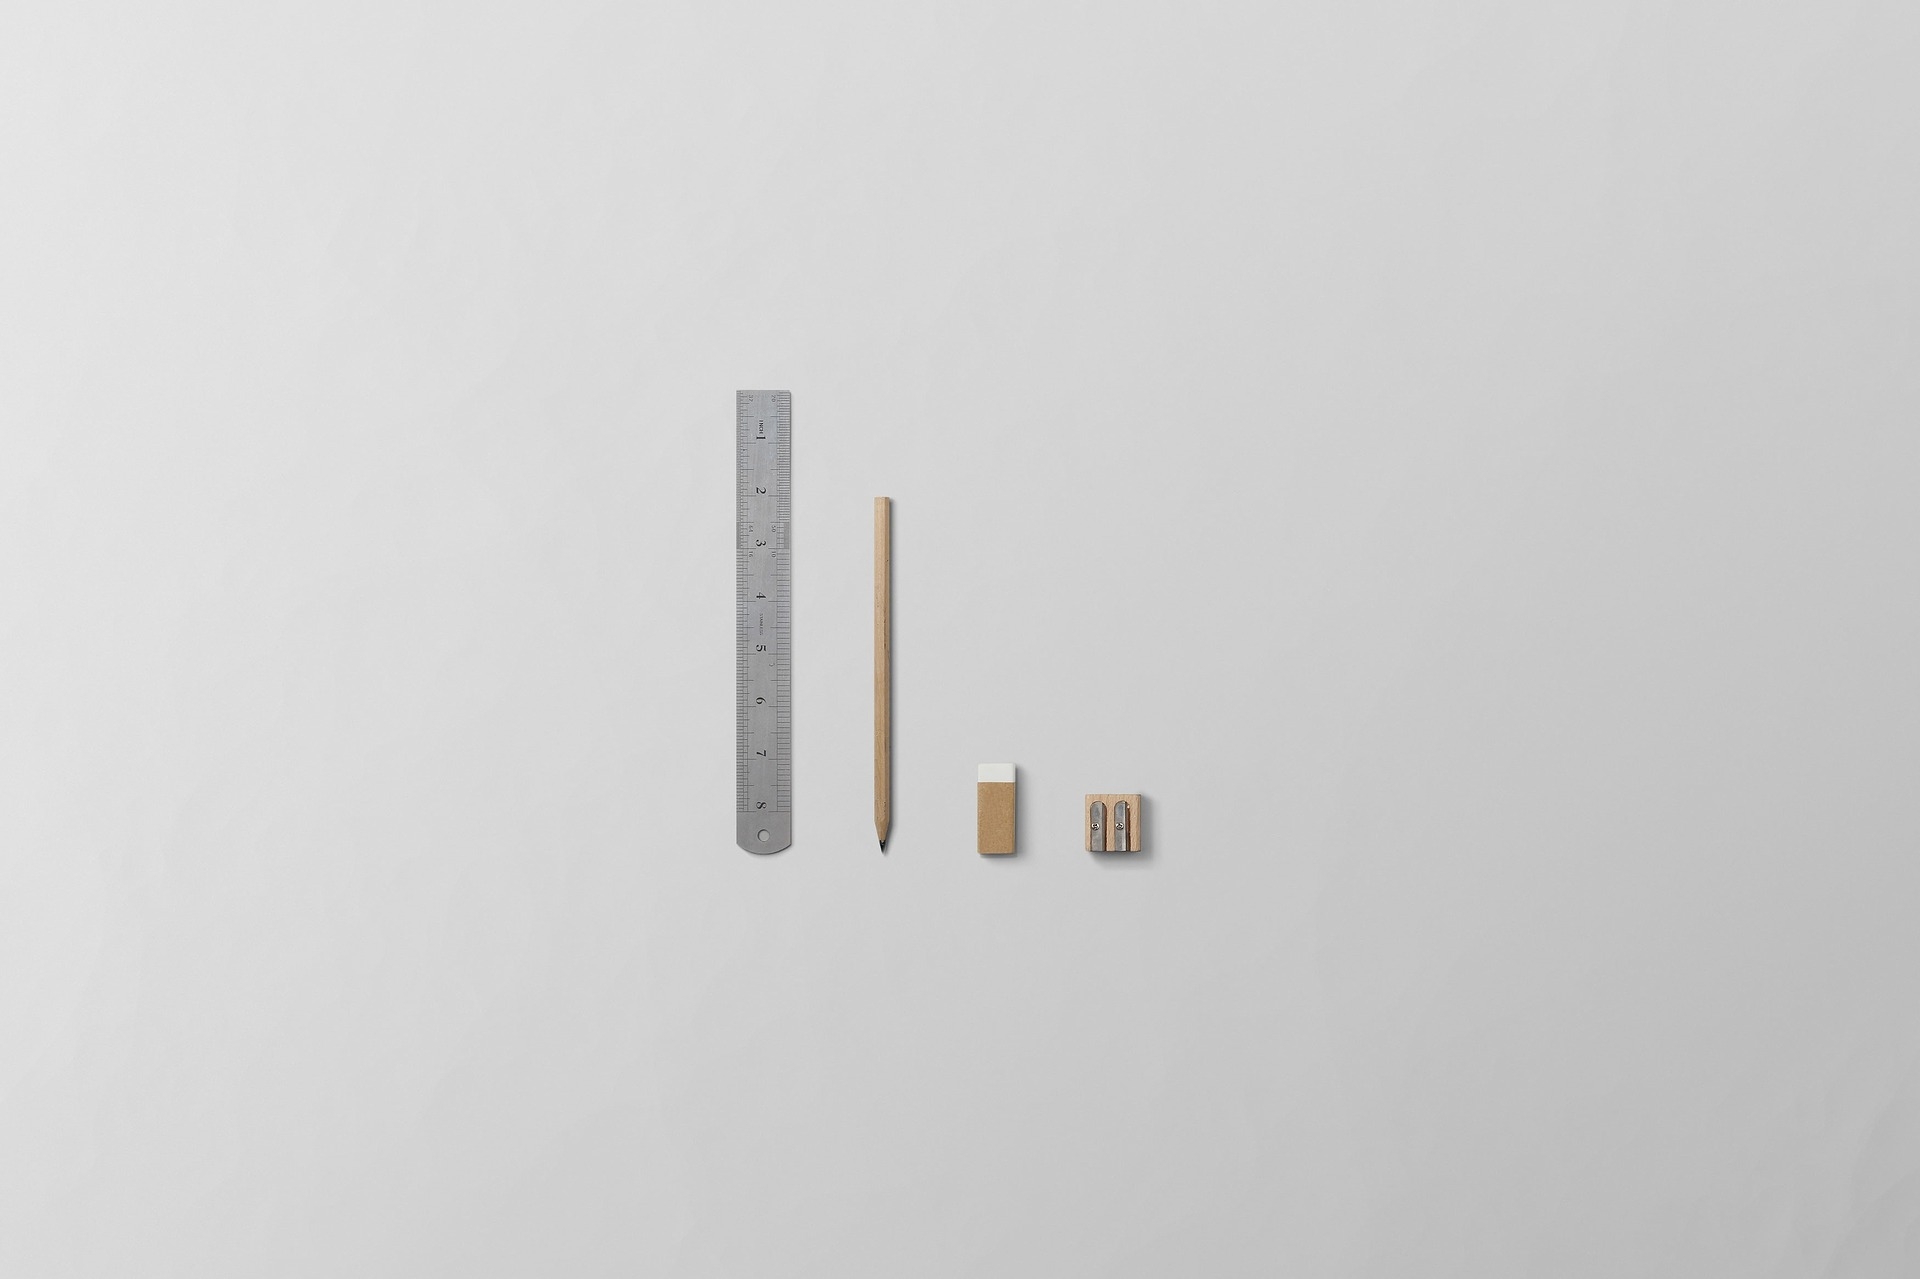 Ruler, Pen, Eraser, Sharper aligned in scalable order